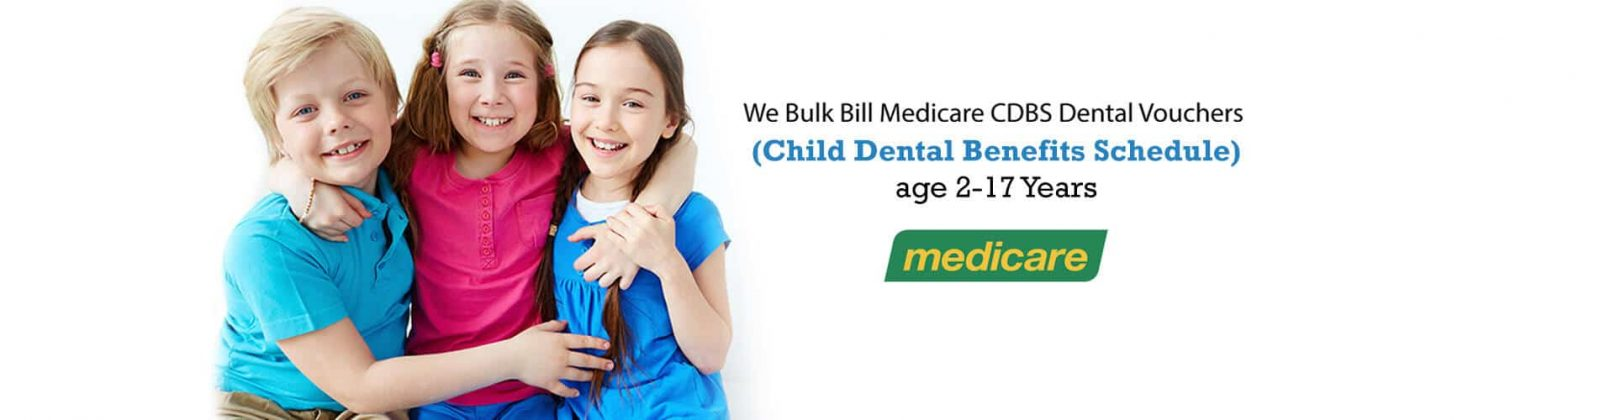 Child Dental Benefit Schedule Winning